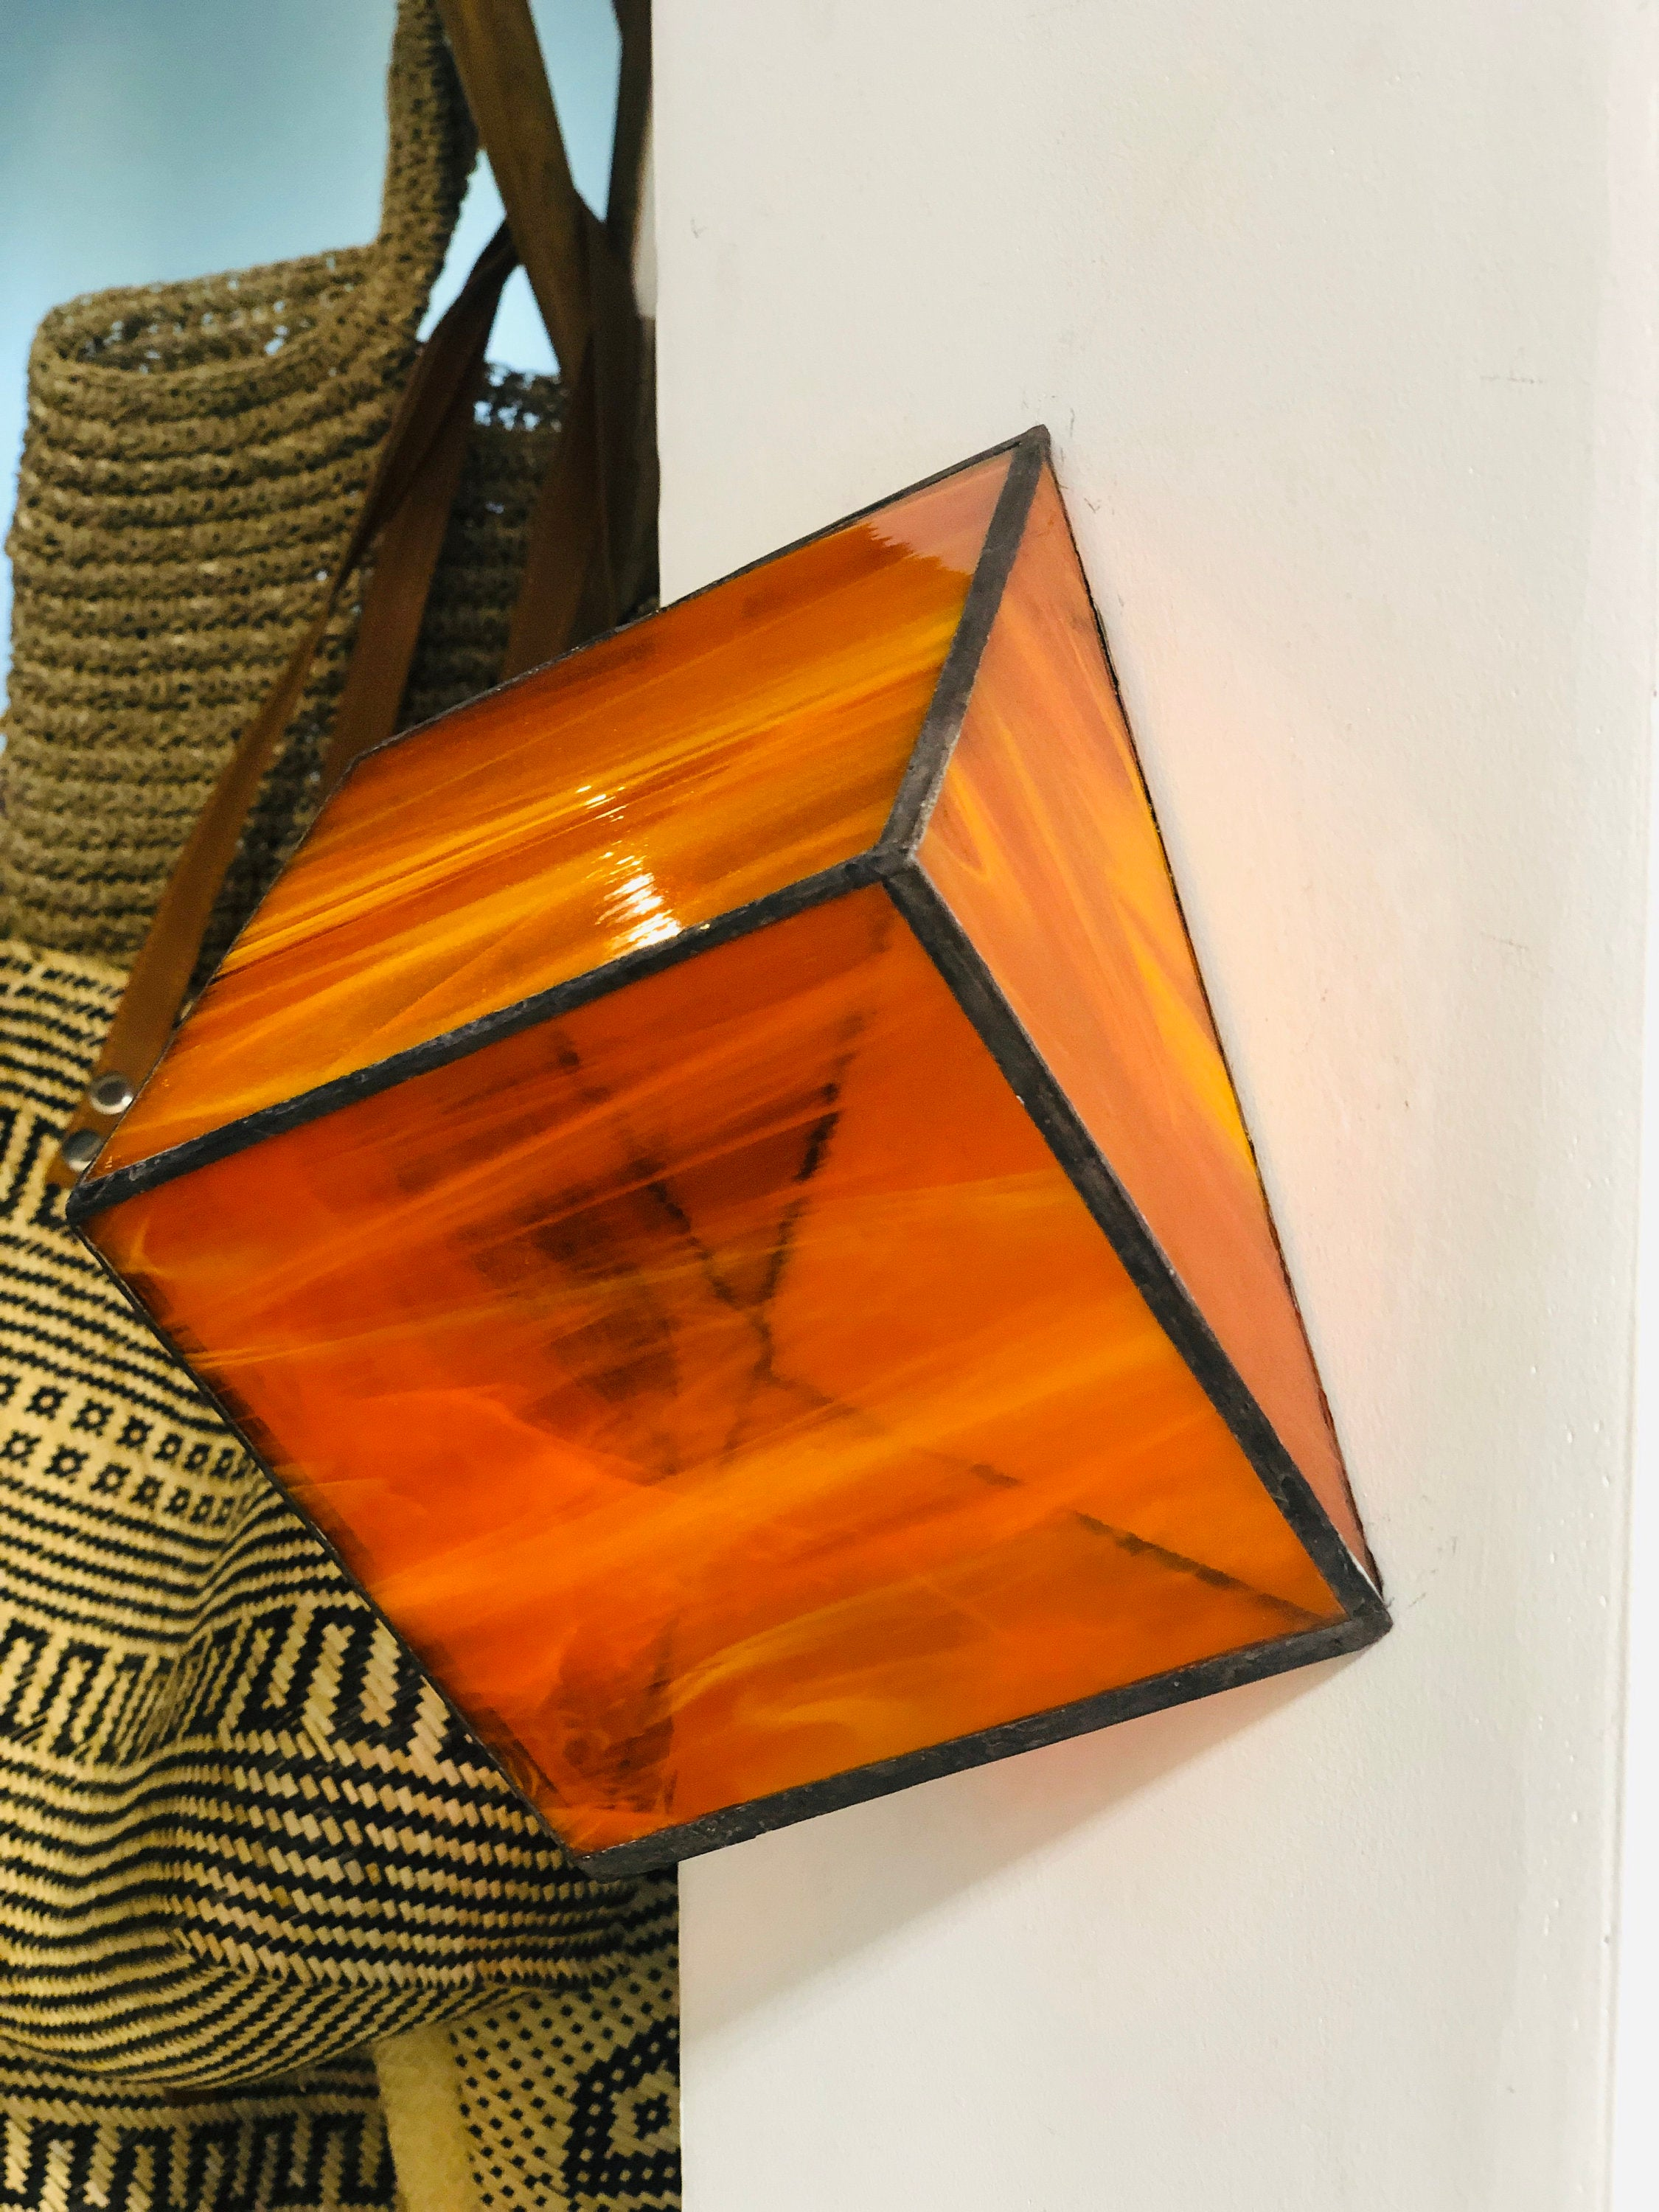 Stained Orange semi transparent glass 3D geometric cube wall or table top decoration Sculpture Tiffany technique - Large, Platonic Solid